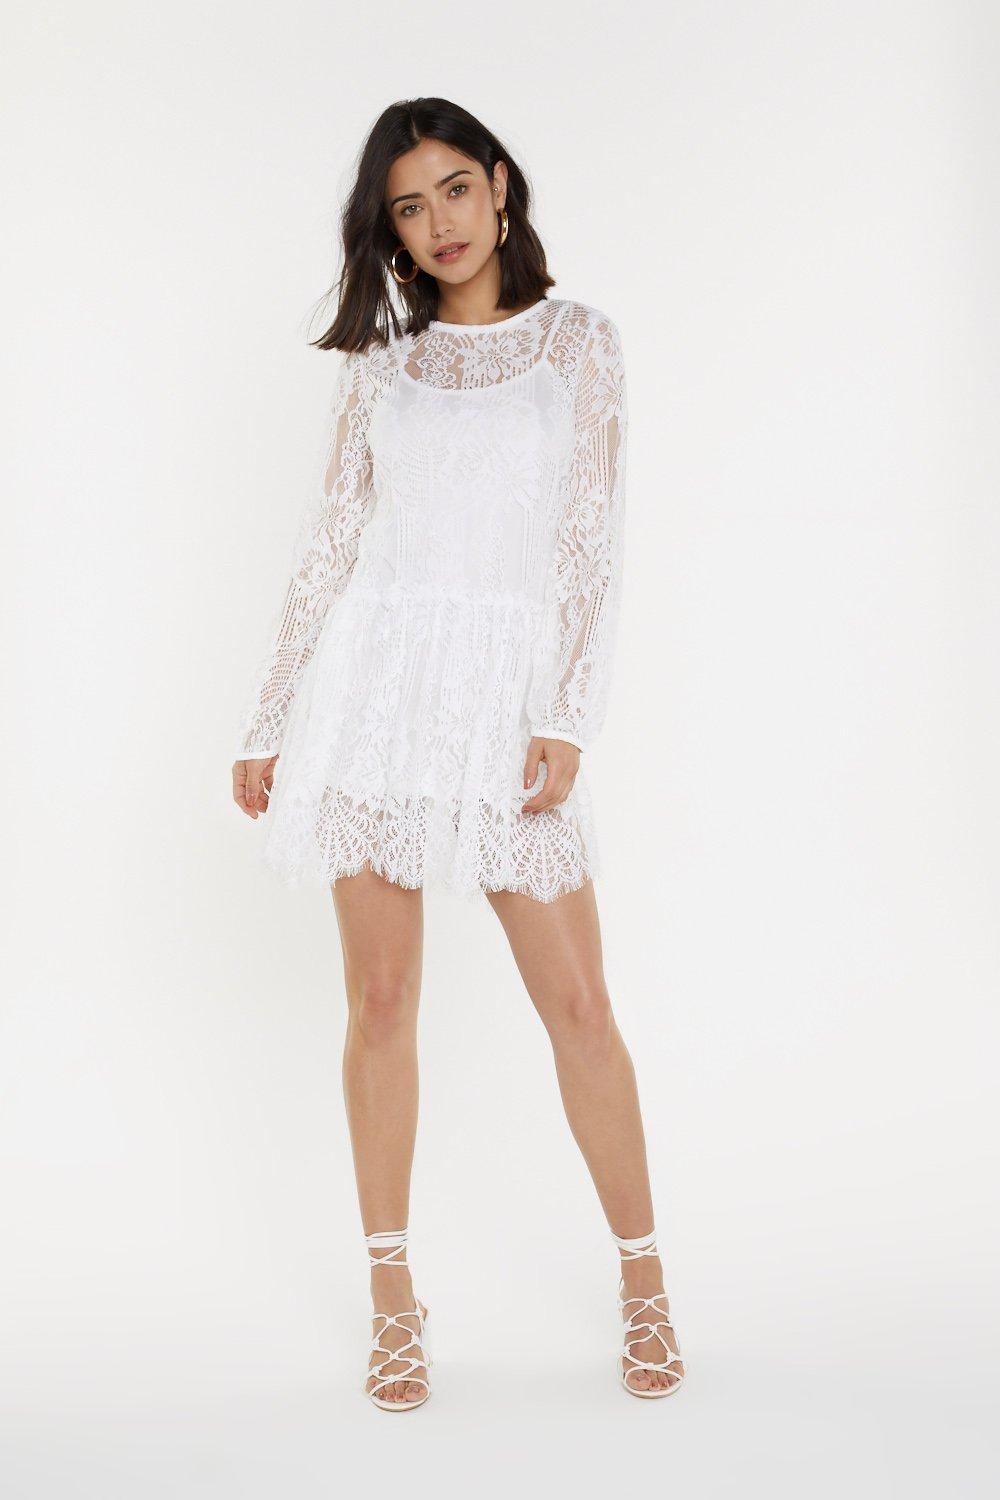 dd8f05f012e2 Lace Smock Dress   Shop Clothes at Nasty Gal!